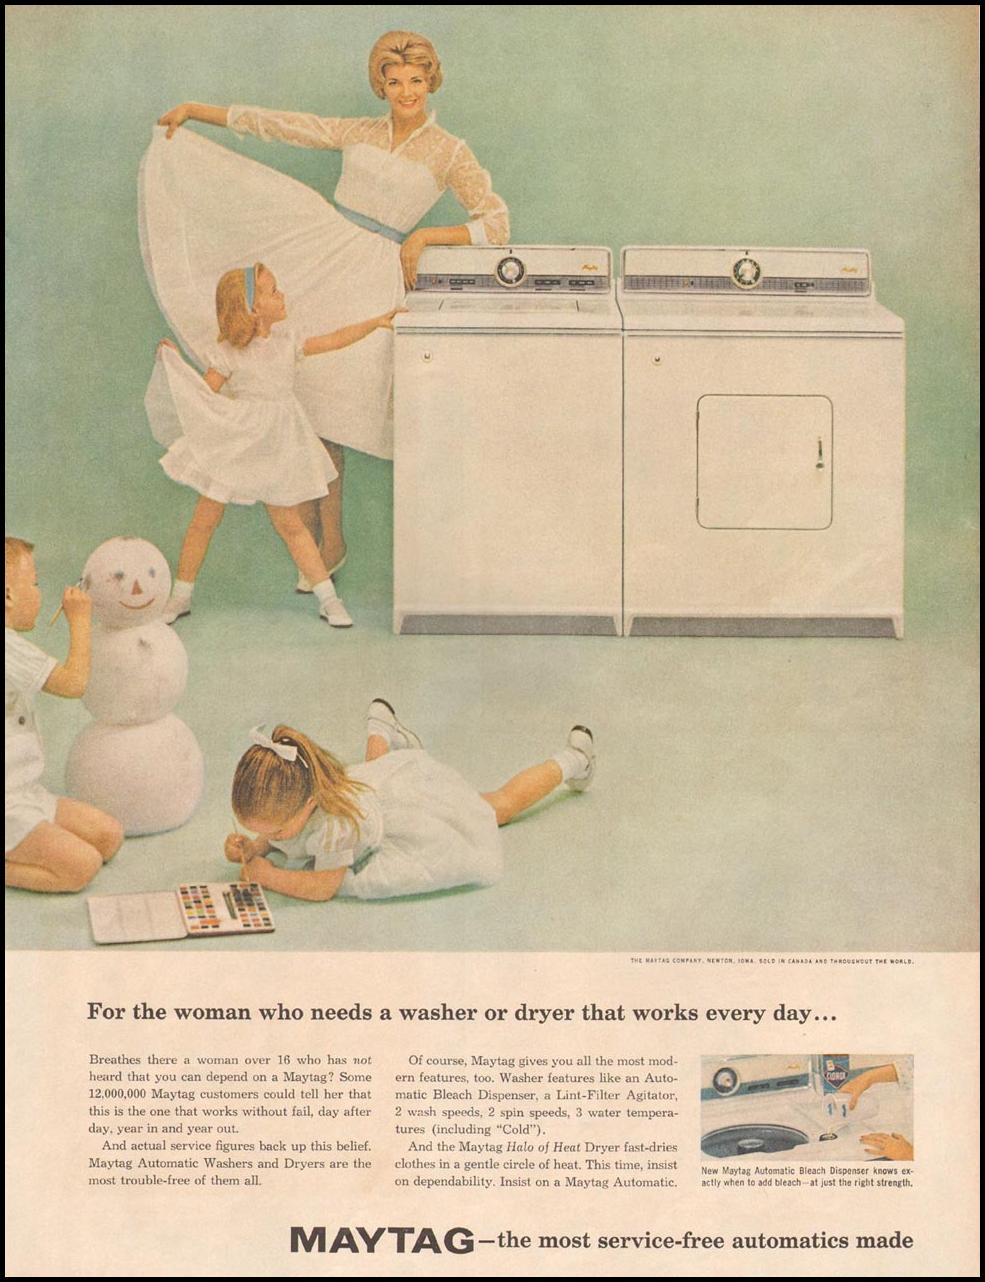 MAYTAG AUTOMATIC WASHING MACHINES LIFE 10/05/1959